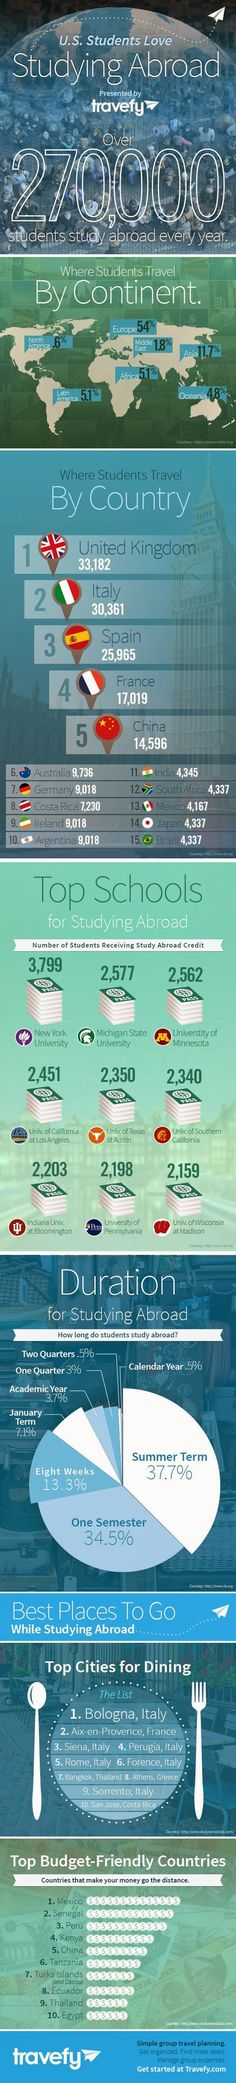 Report Millions of students reveal surprising online learning - recoommendation letter guide